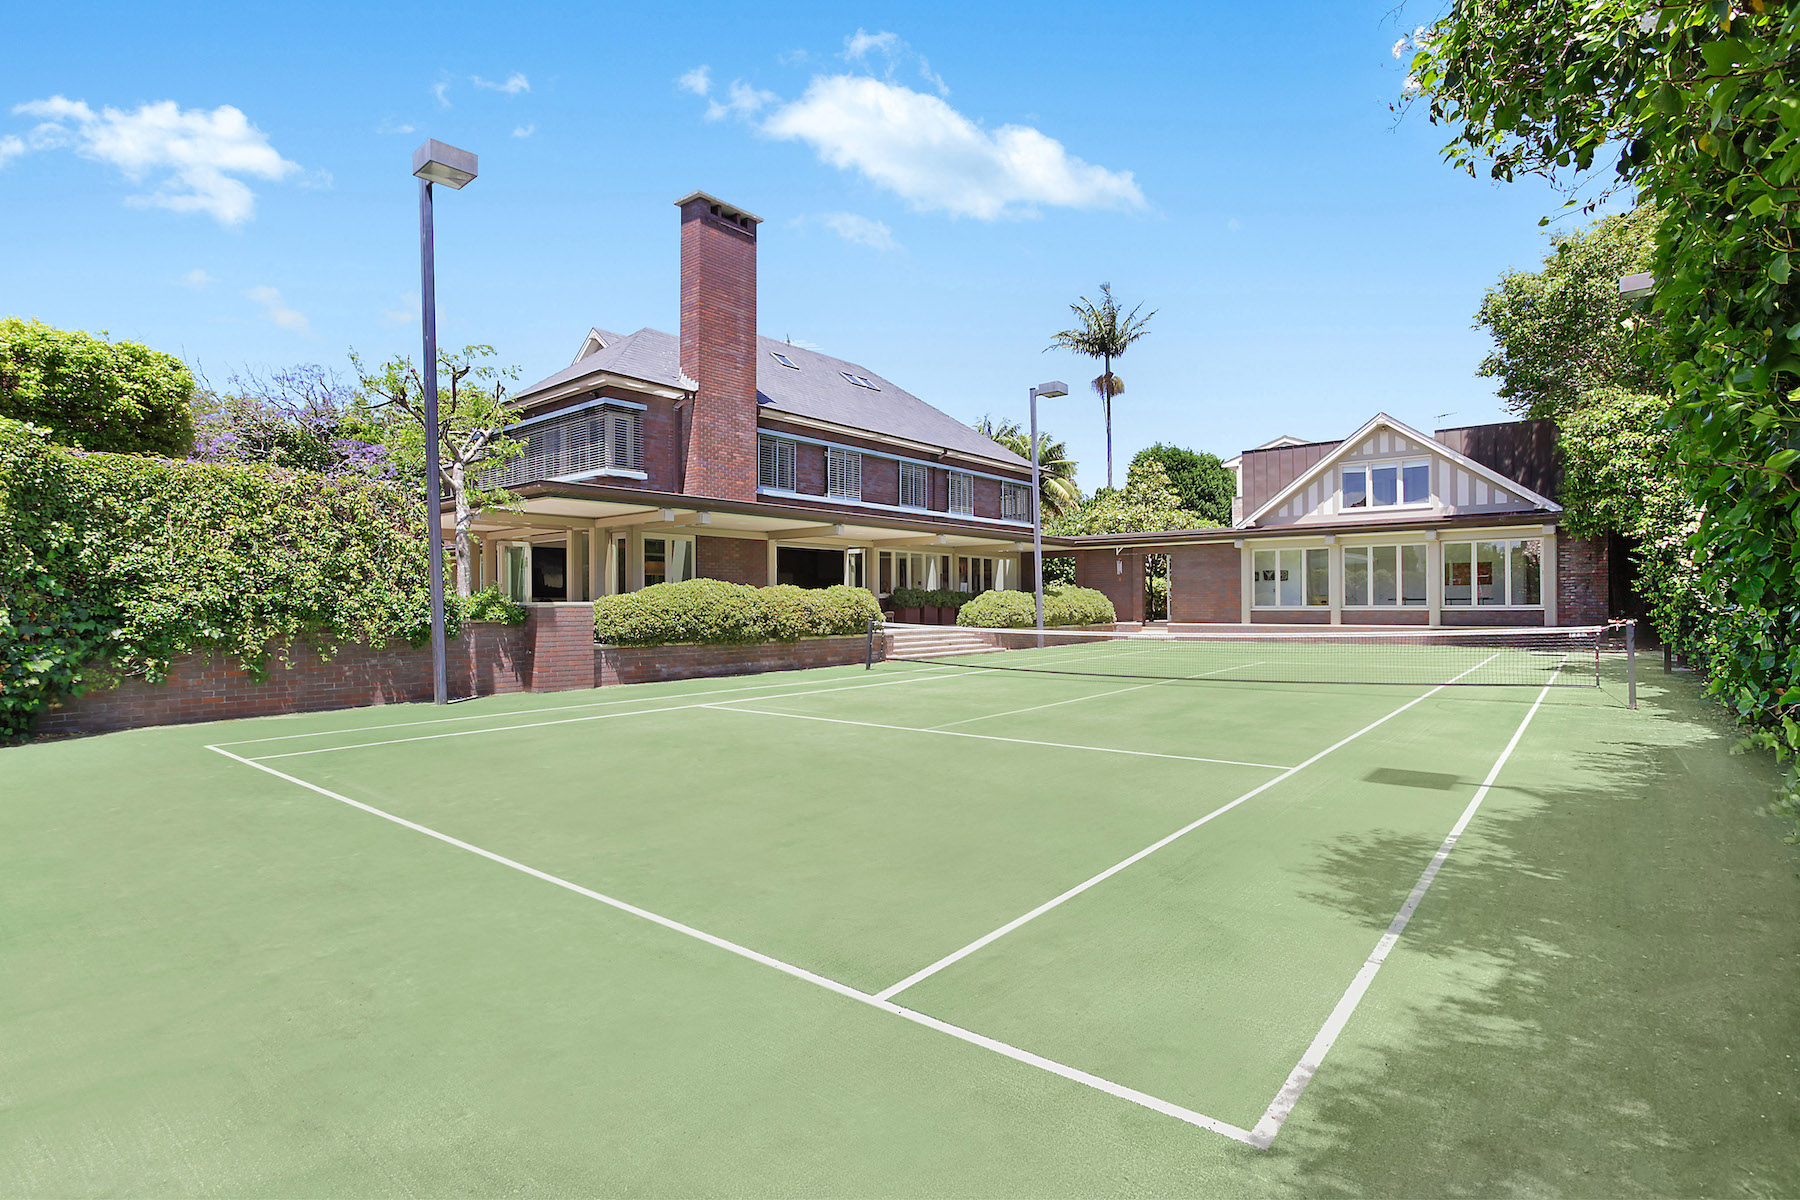 Other Residential Homes for Sale at 38 Victoria Road, Bellevue Hill 38 Victoria Road Sydney, New South Wales 2029 Australia